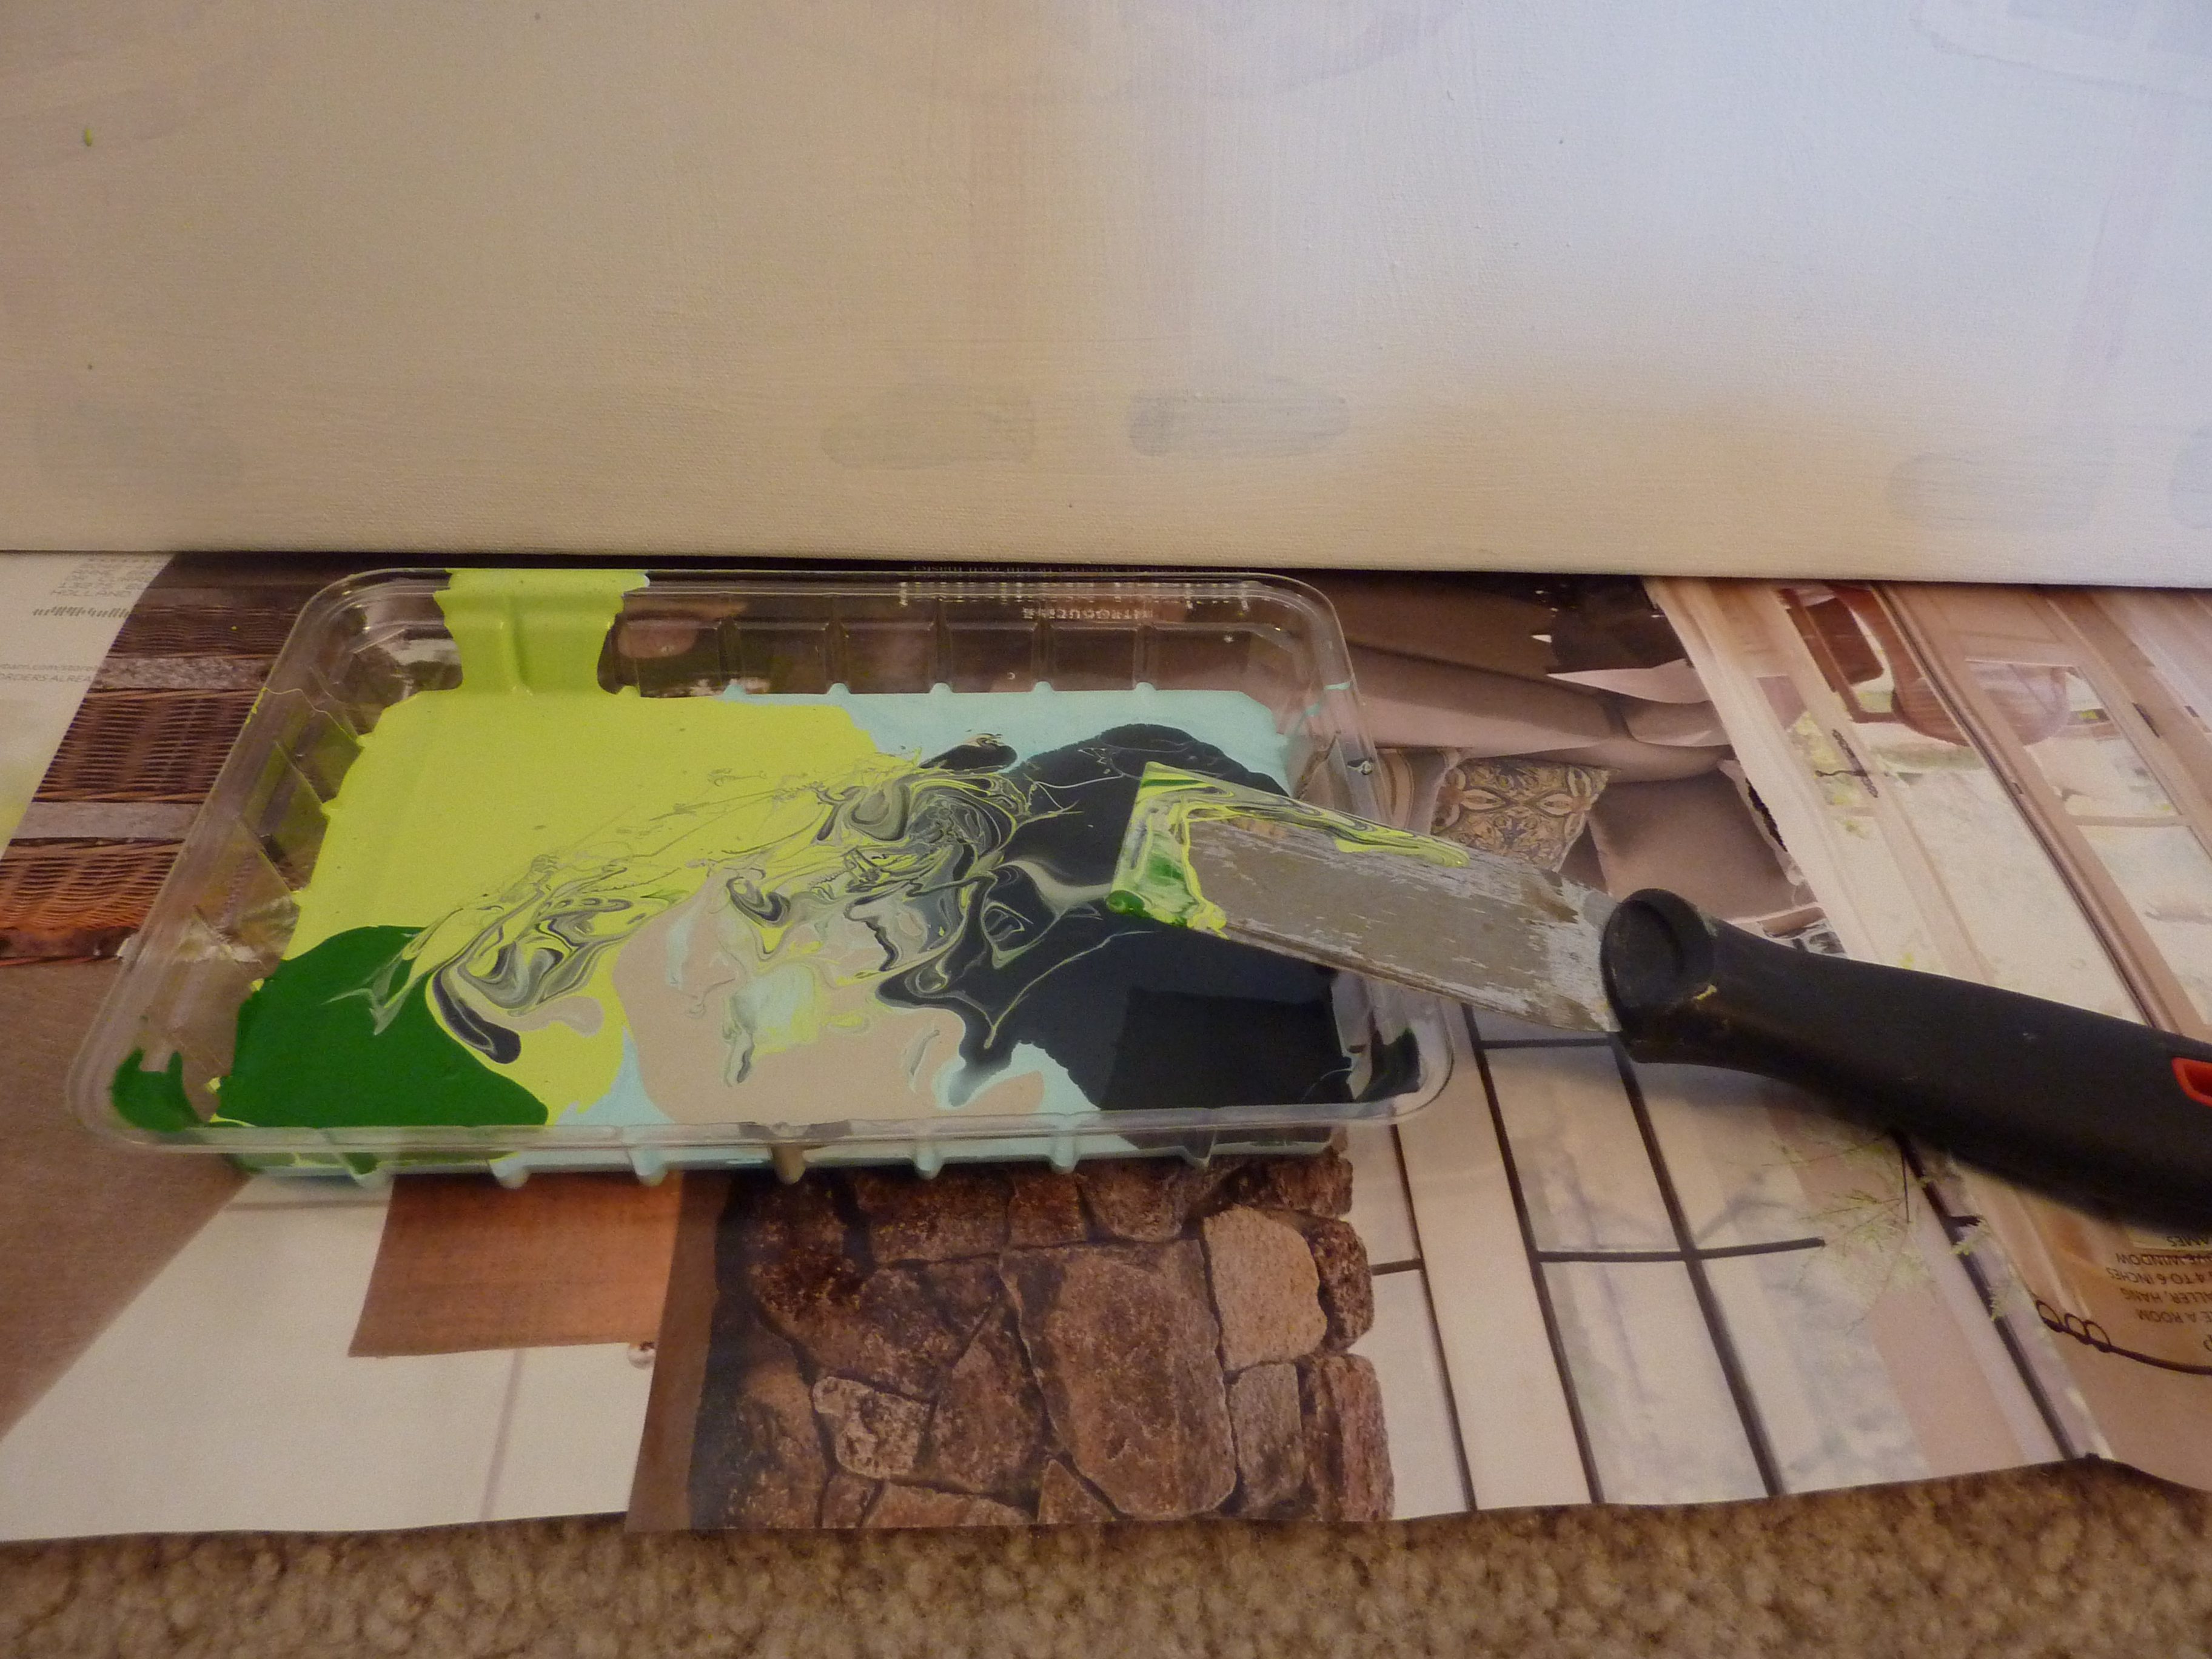 paint tray for putty knife art